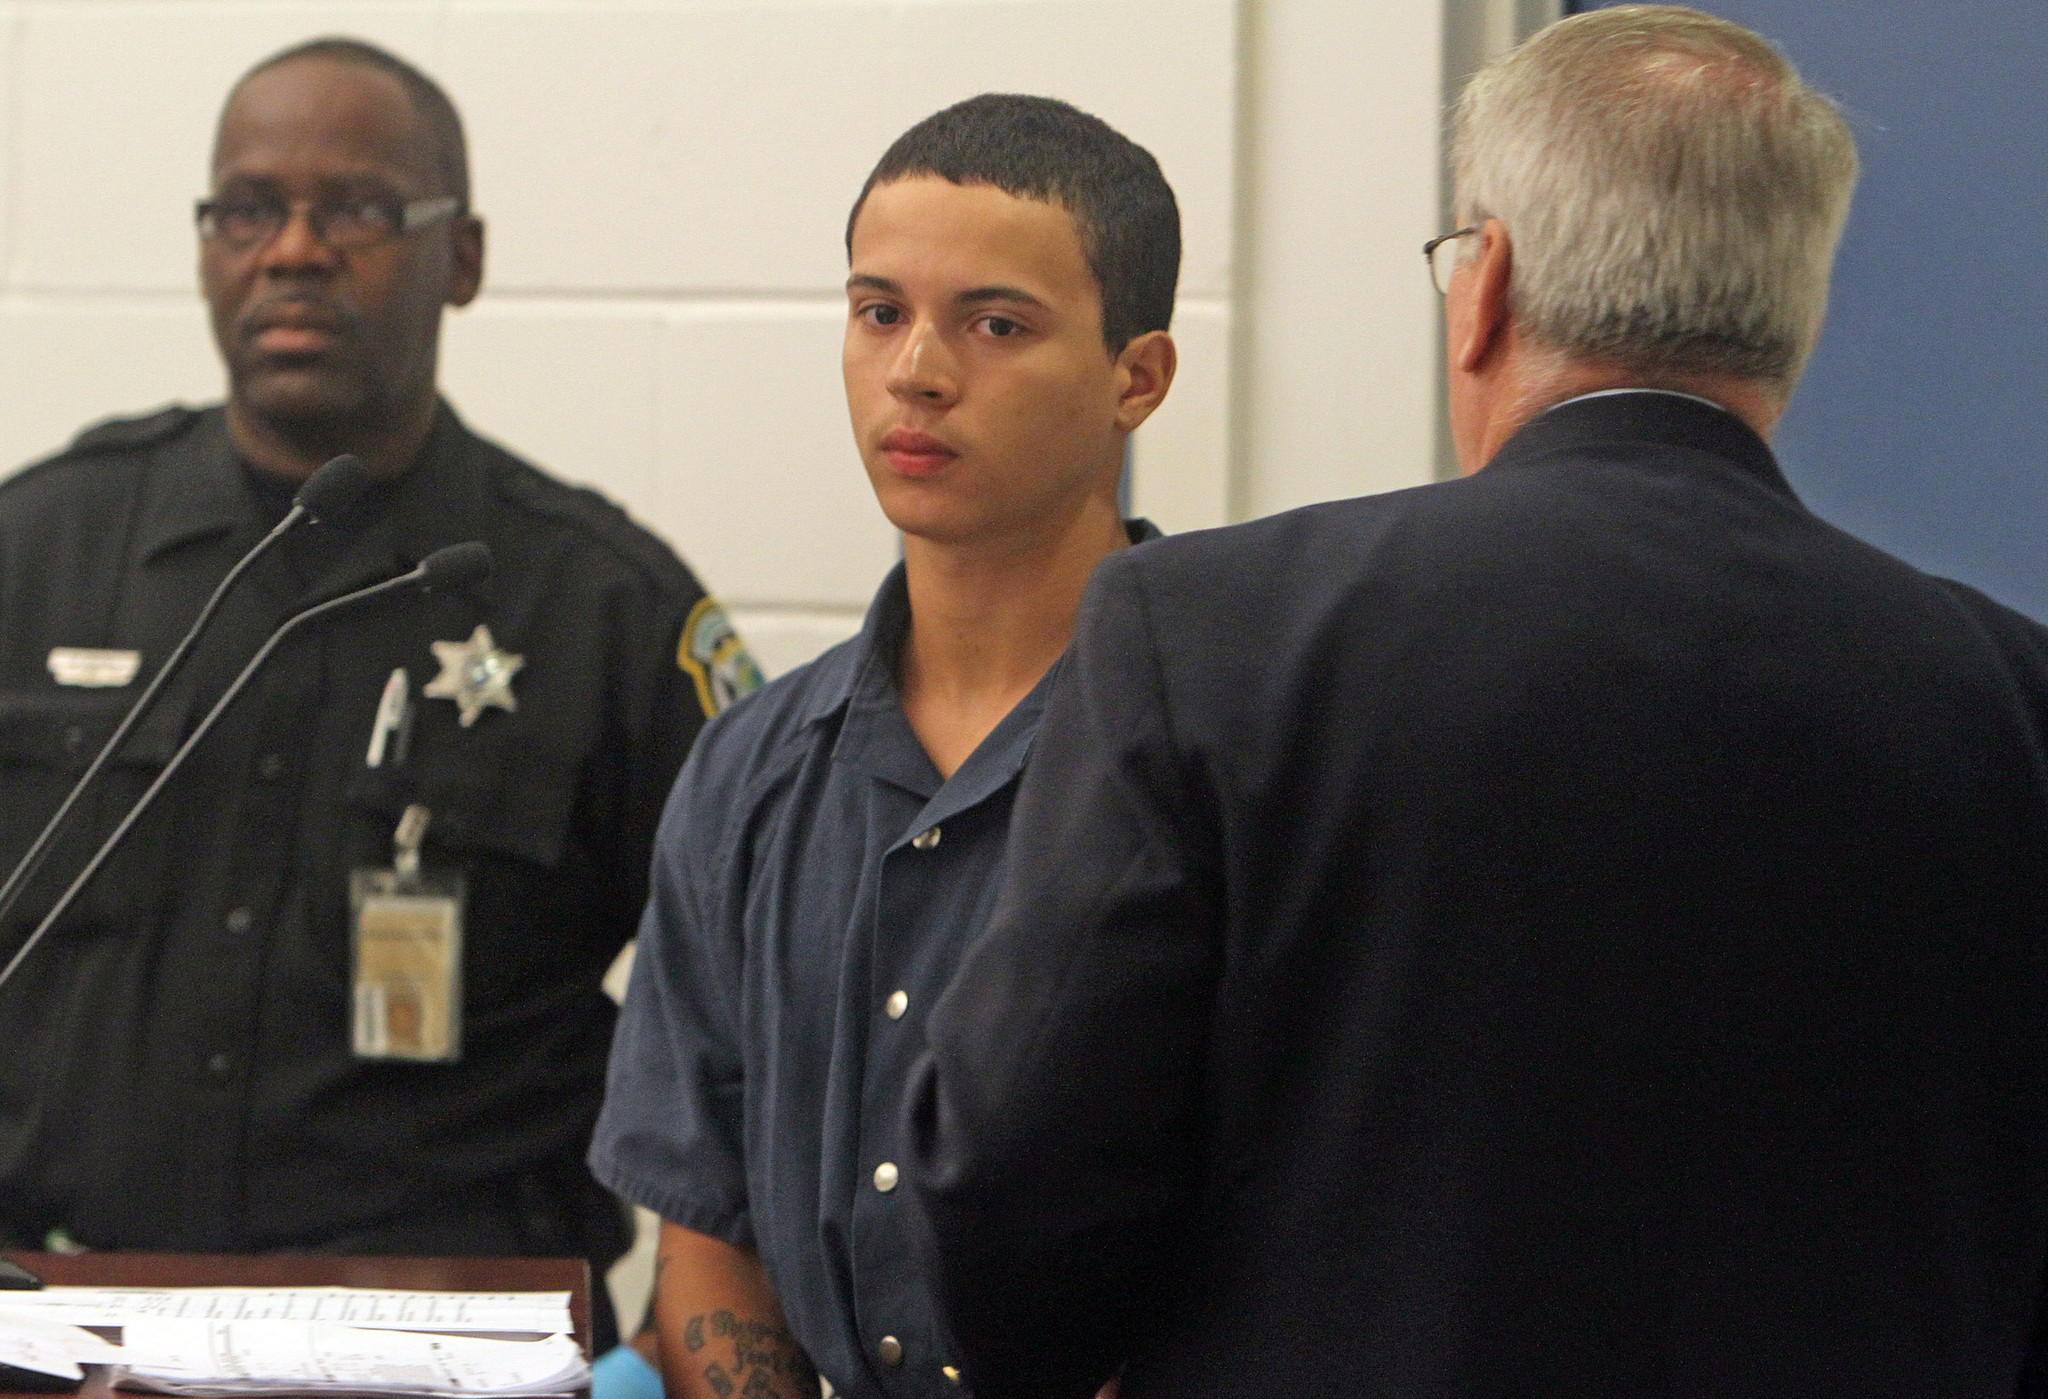 Charles Dessus, 18, center, makes his initial court appearance Wednesday, September 12, 2012 at the Orange County Jail.